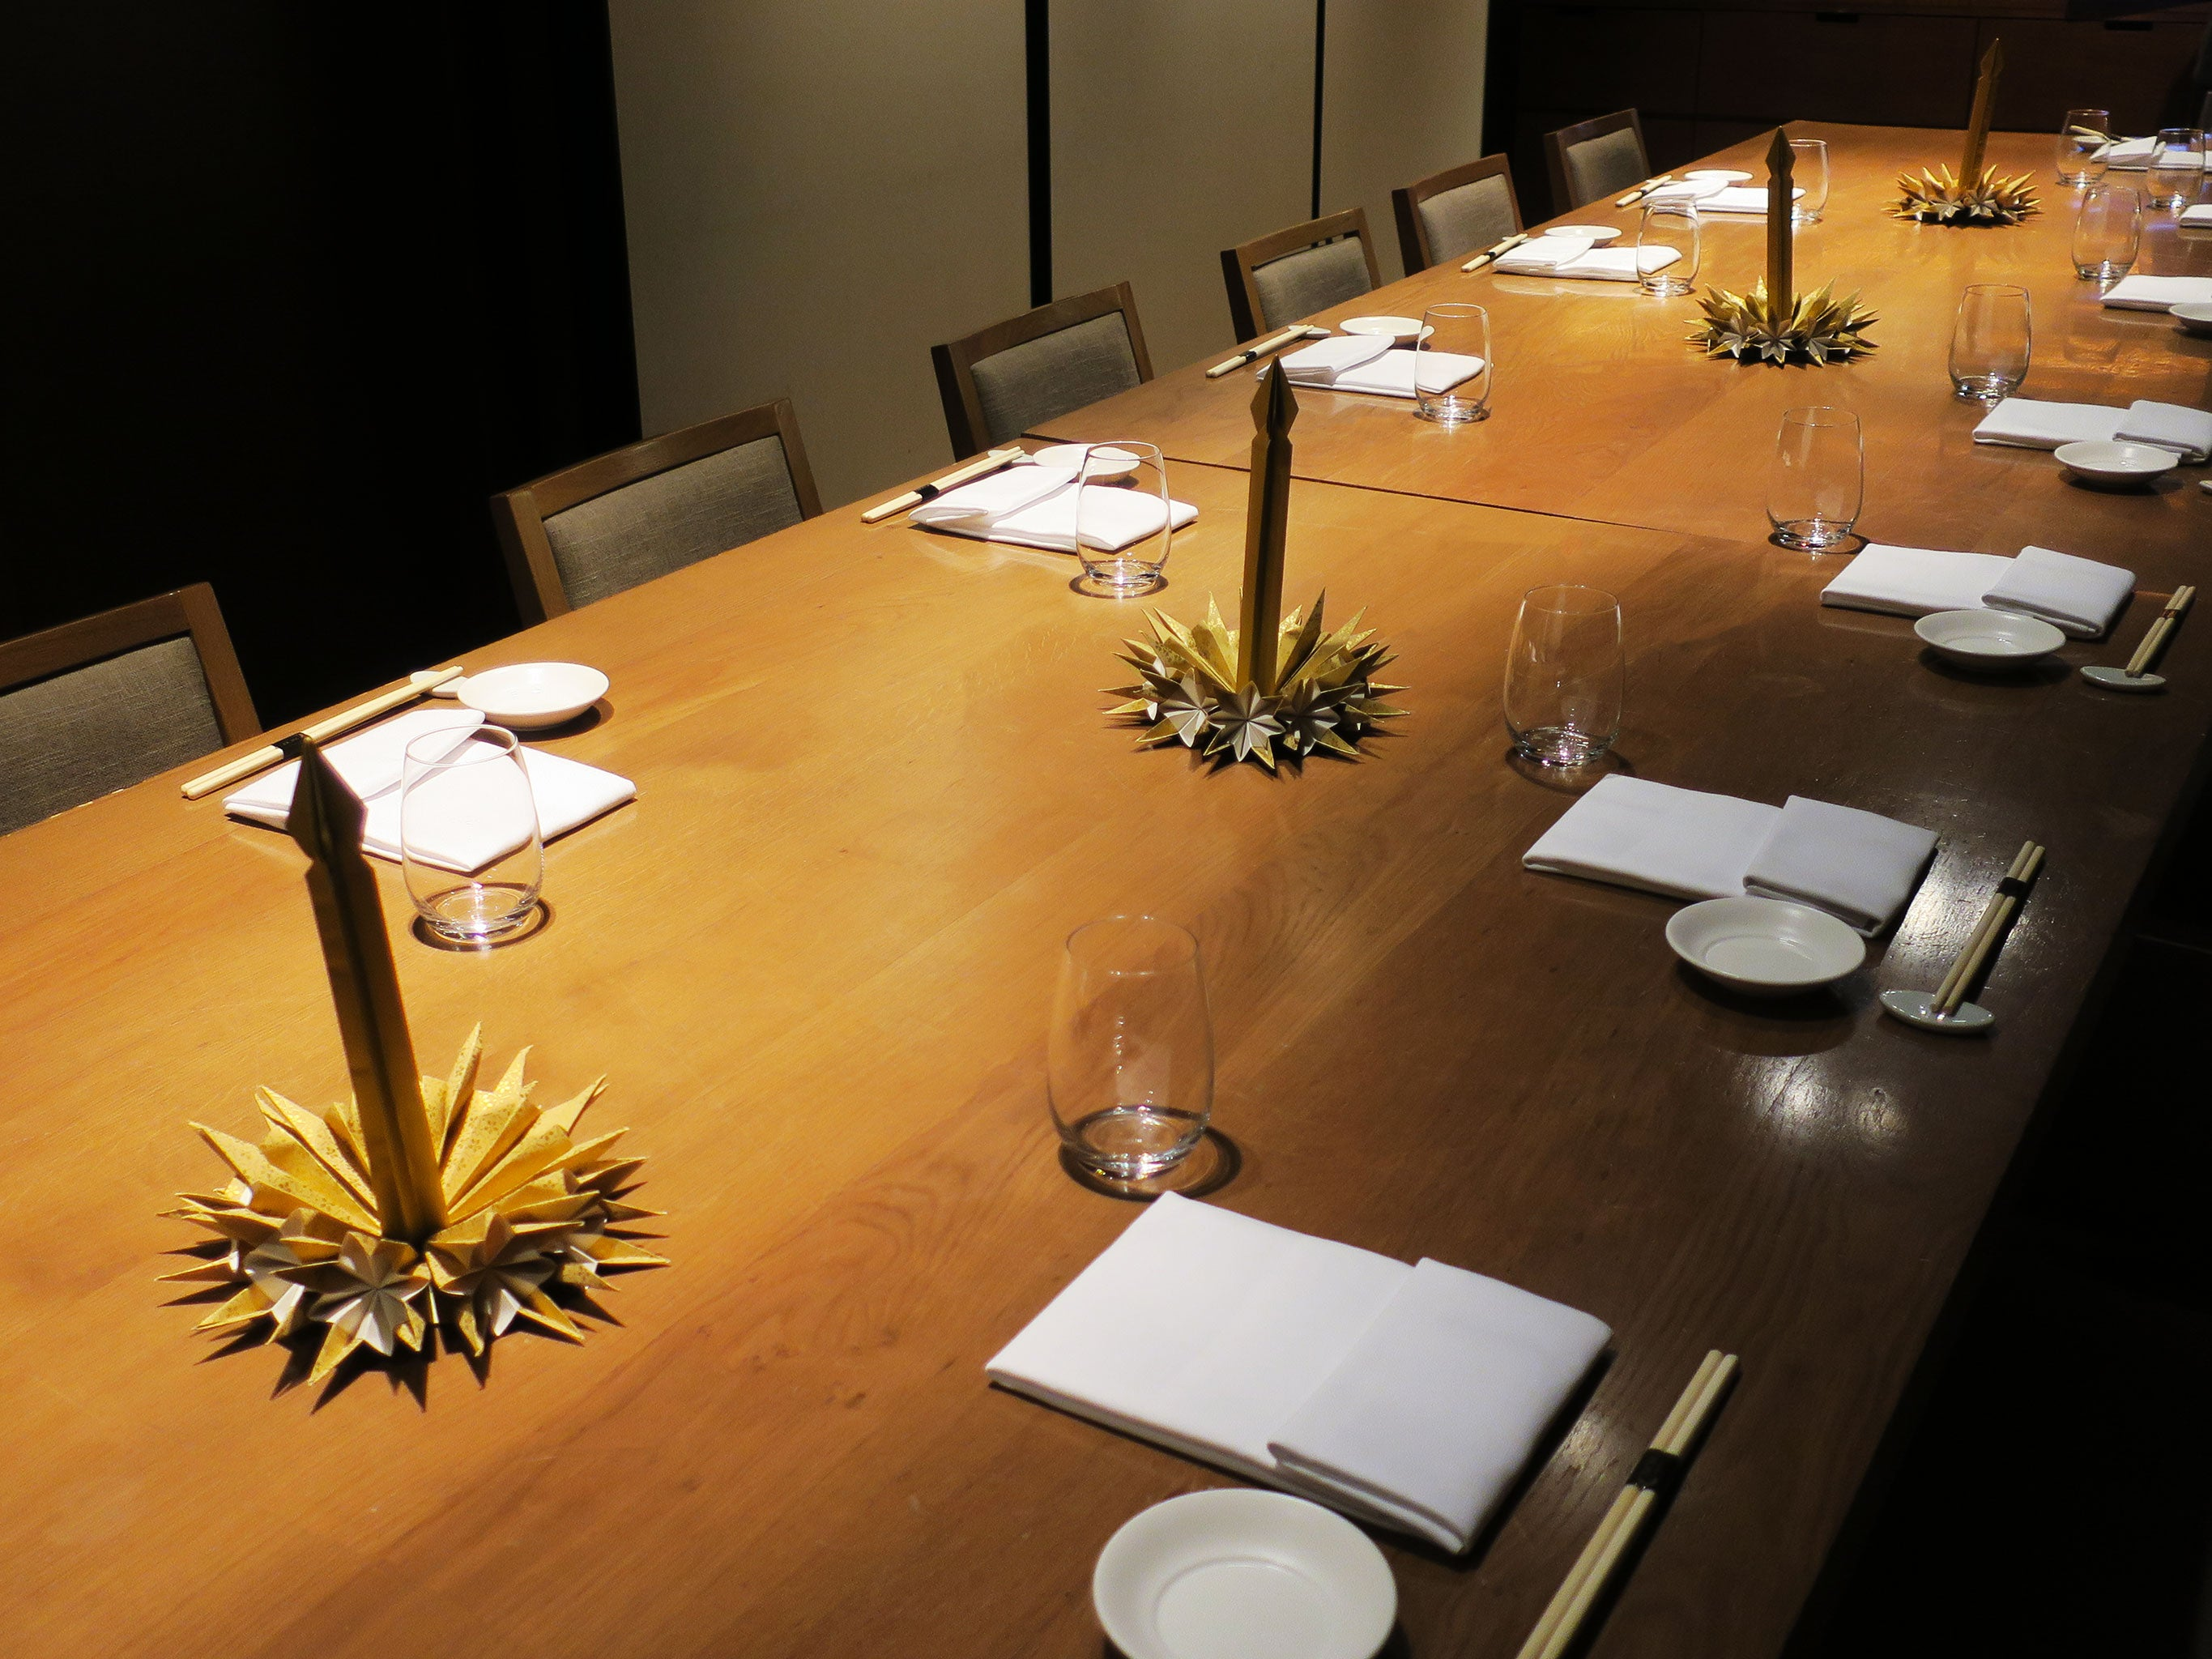 Origami Candles Table decoration for Christmas Business Dinner at Nobu Hotel in East London